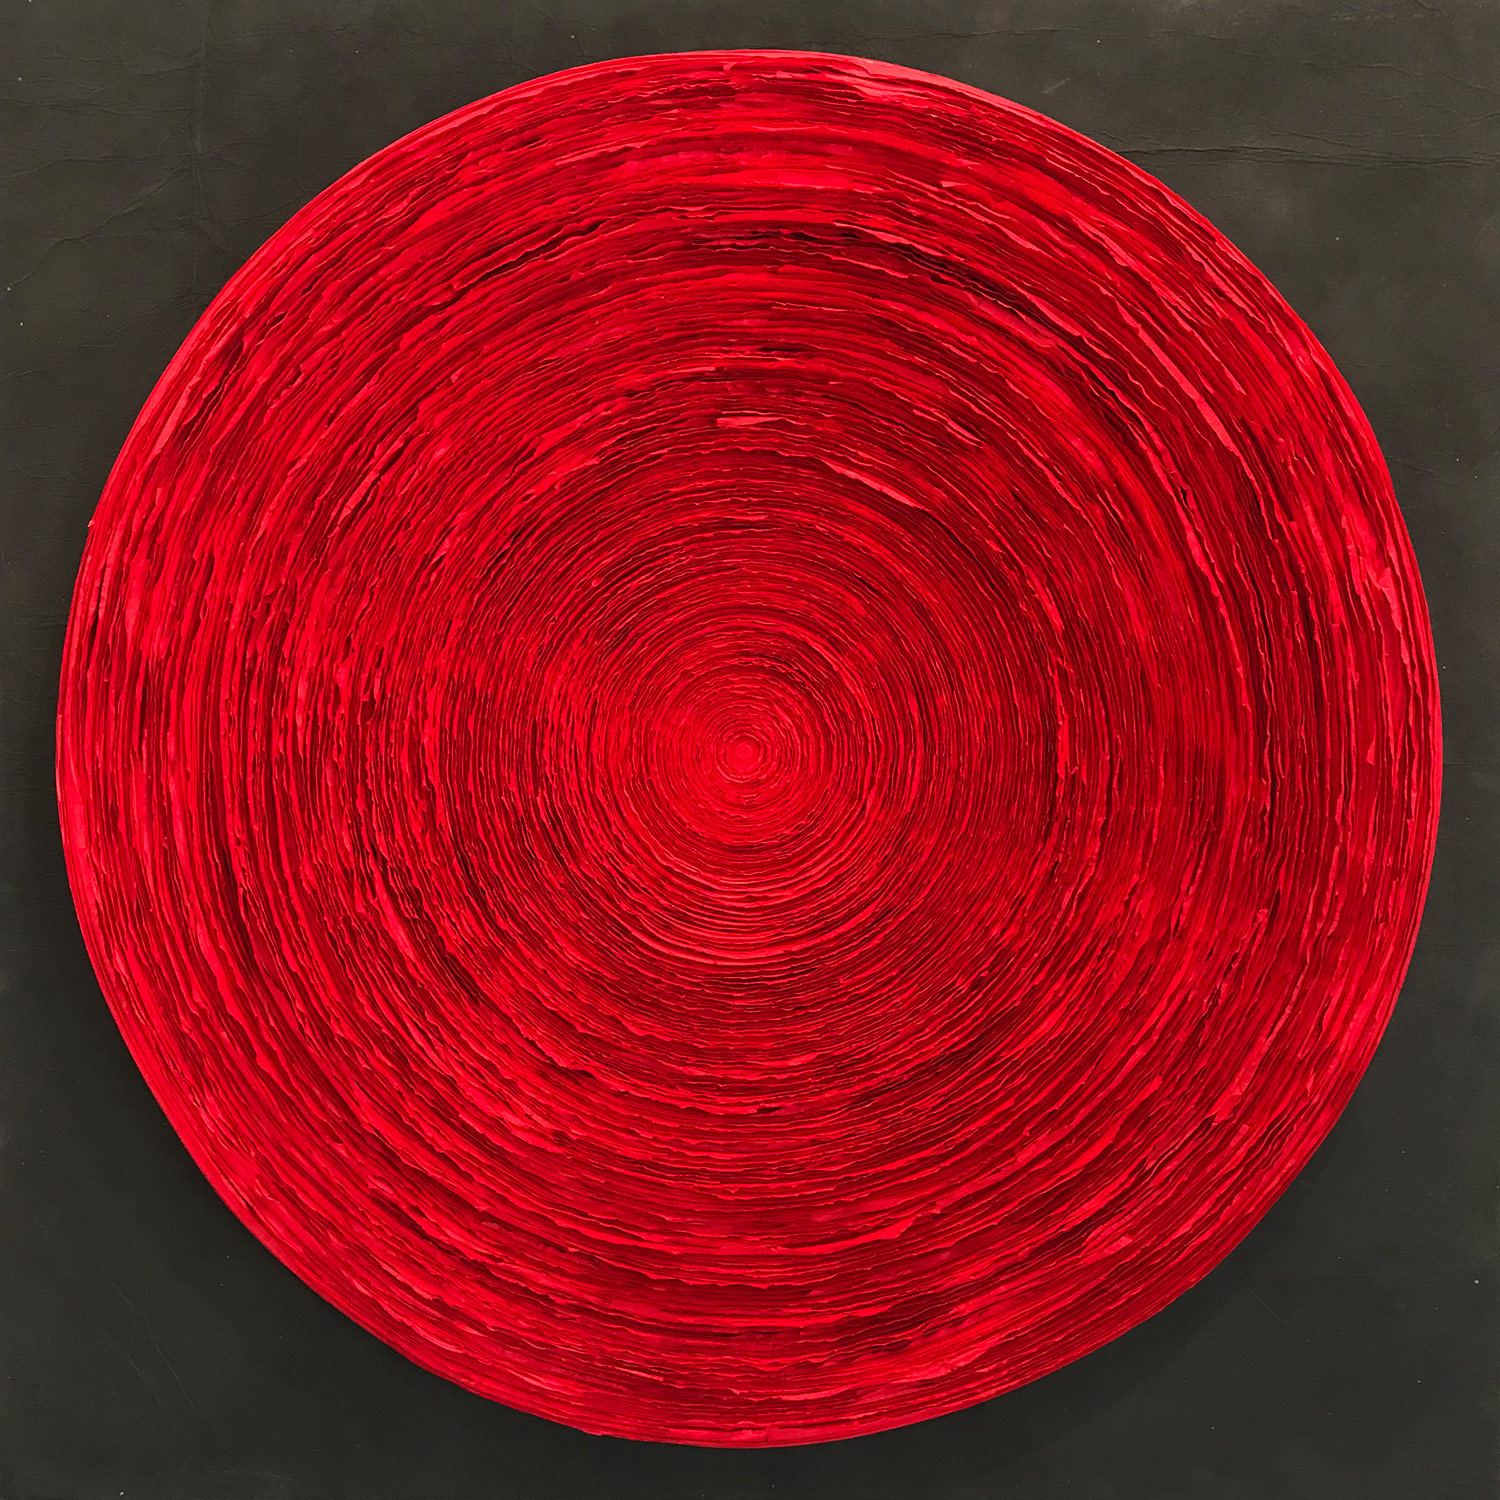 Wave (Rose Red), 2015